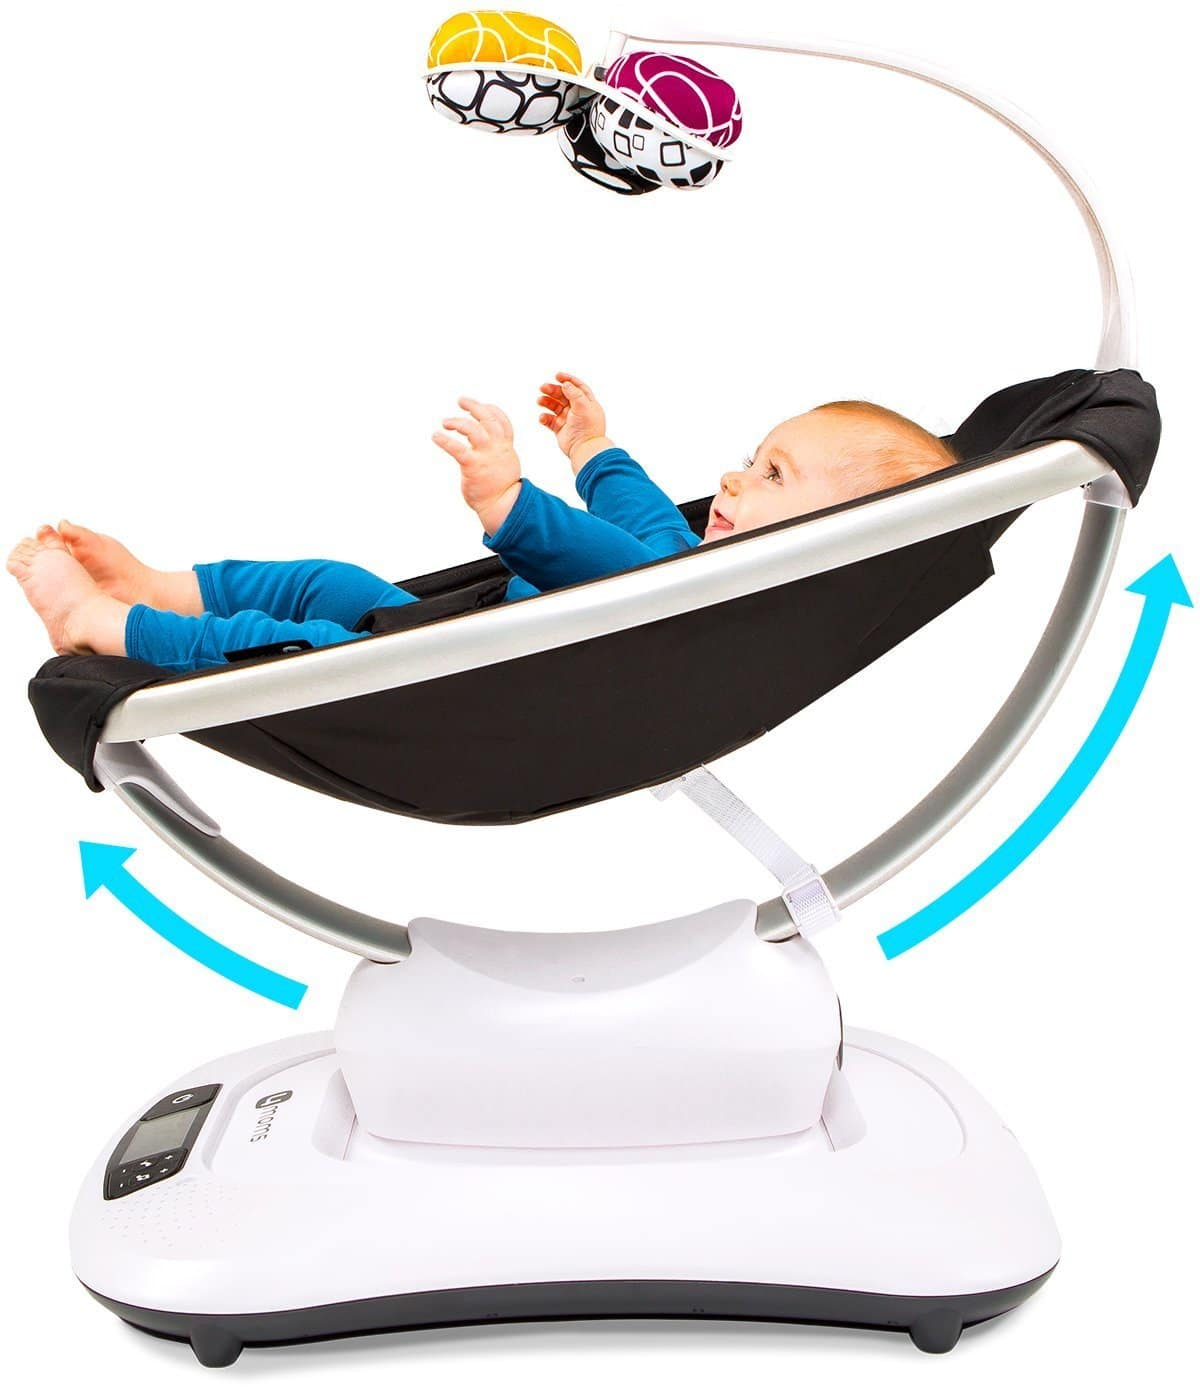 4moms mamaRoo Bluetooth Enabled Baby Bouncers